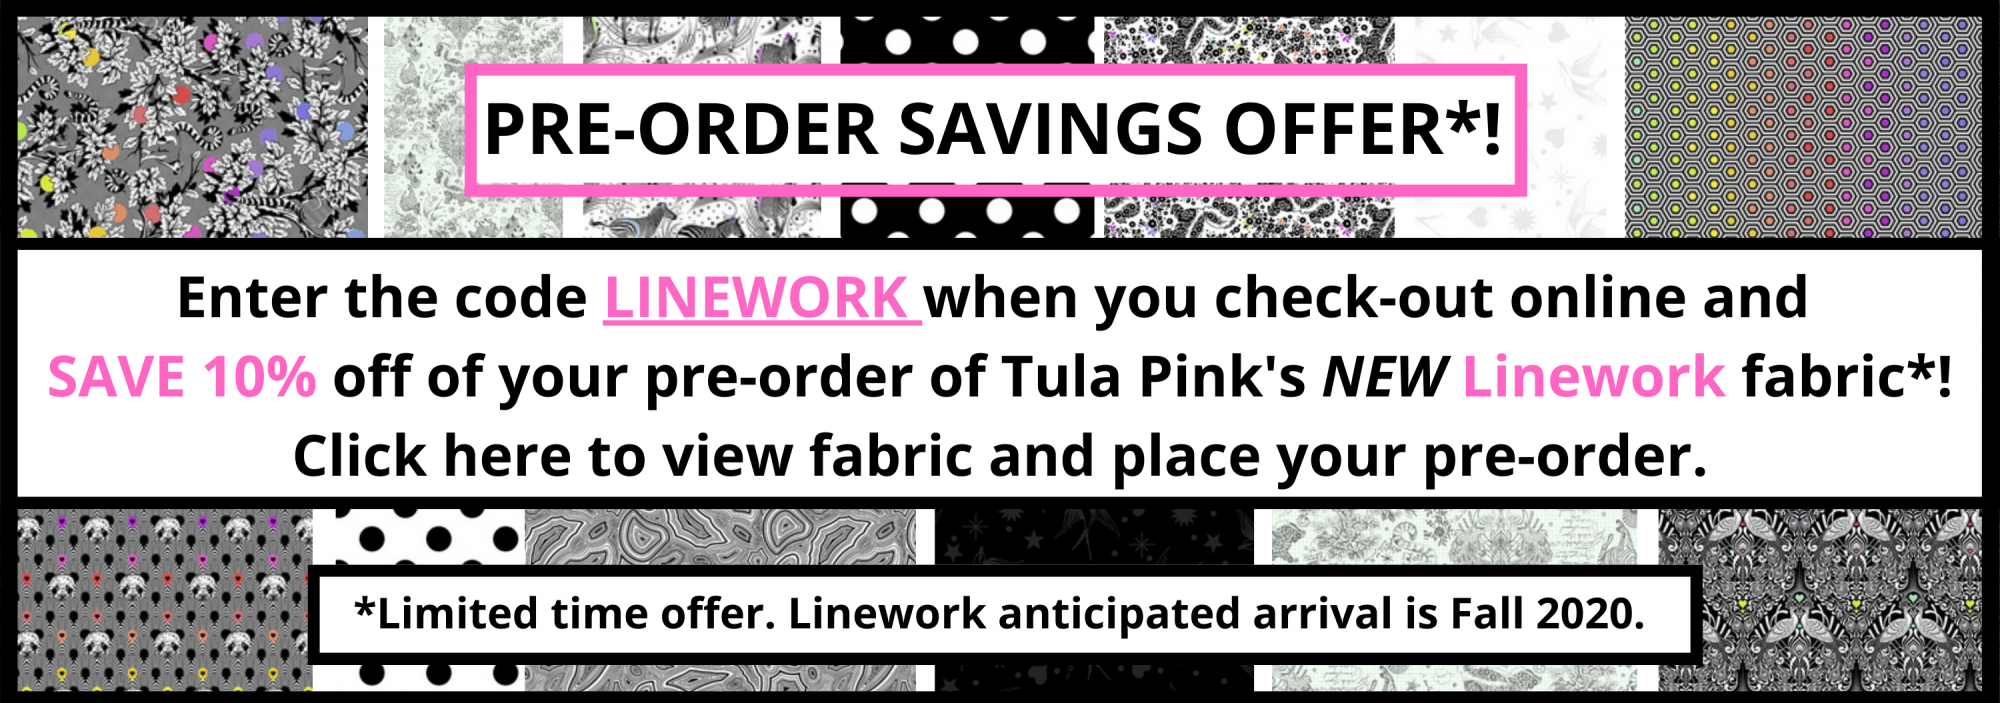 bee's quilt shop st augustine tula pink linework pre-order